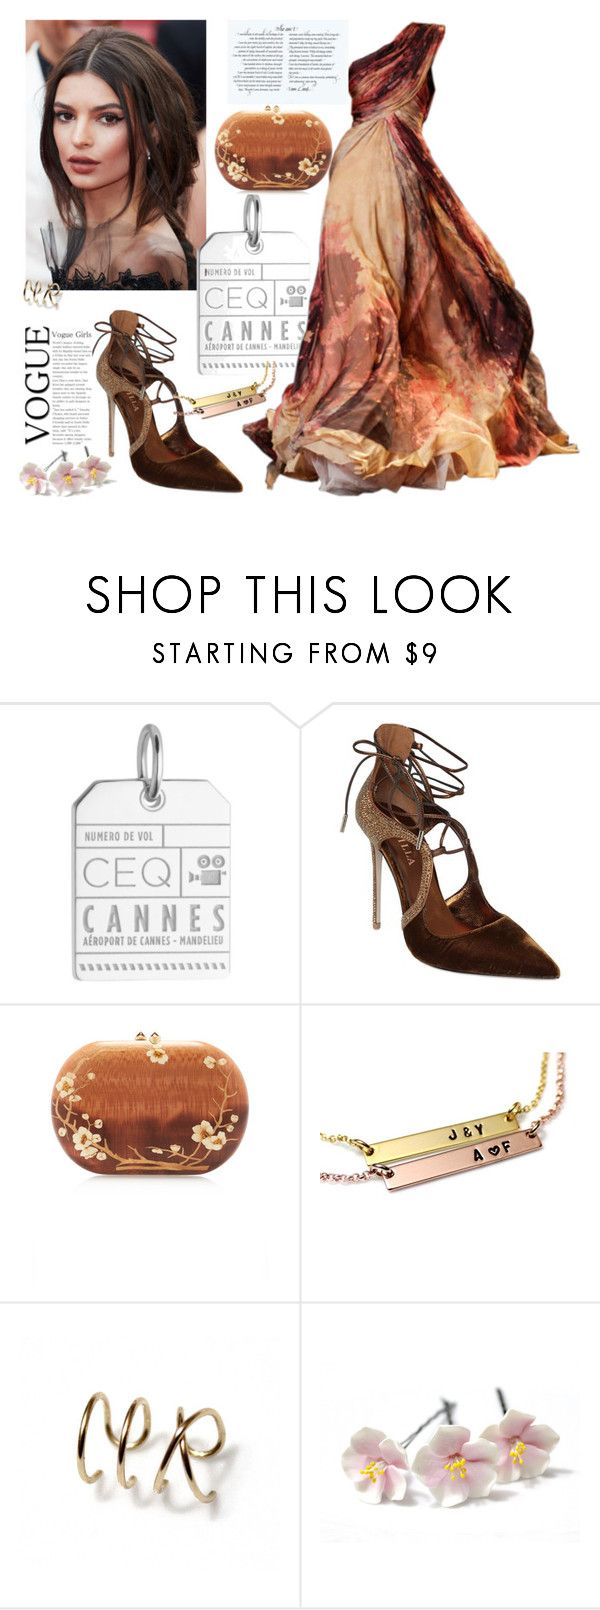 """""""Cannes"""" by treasury ❤ liked on Polyvore featuring Jet Set Candy, Elie Saab, Le Silla and Silvia Furmanovich"""